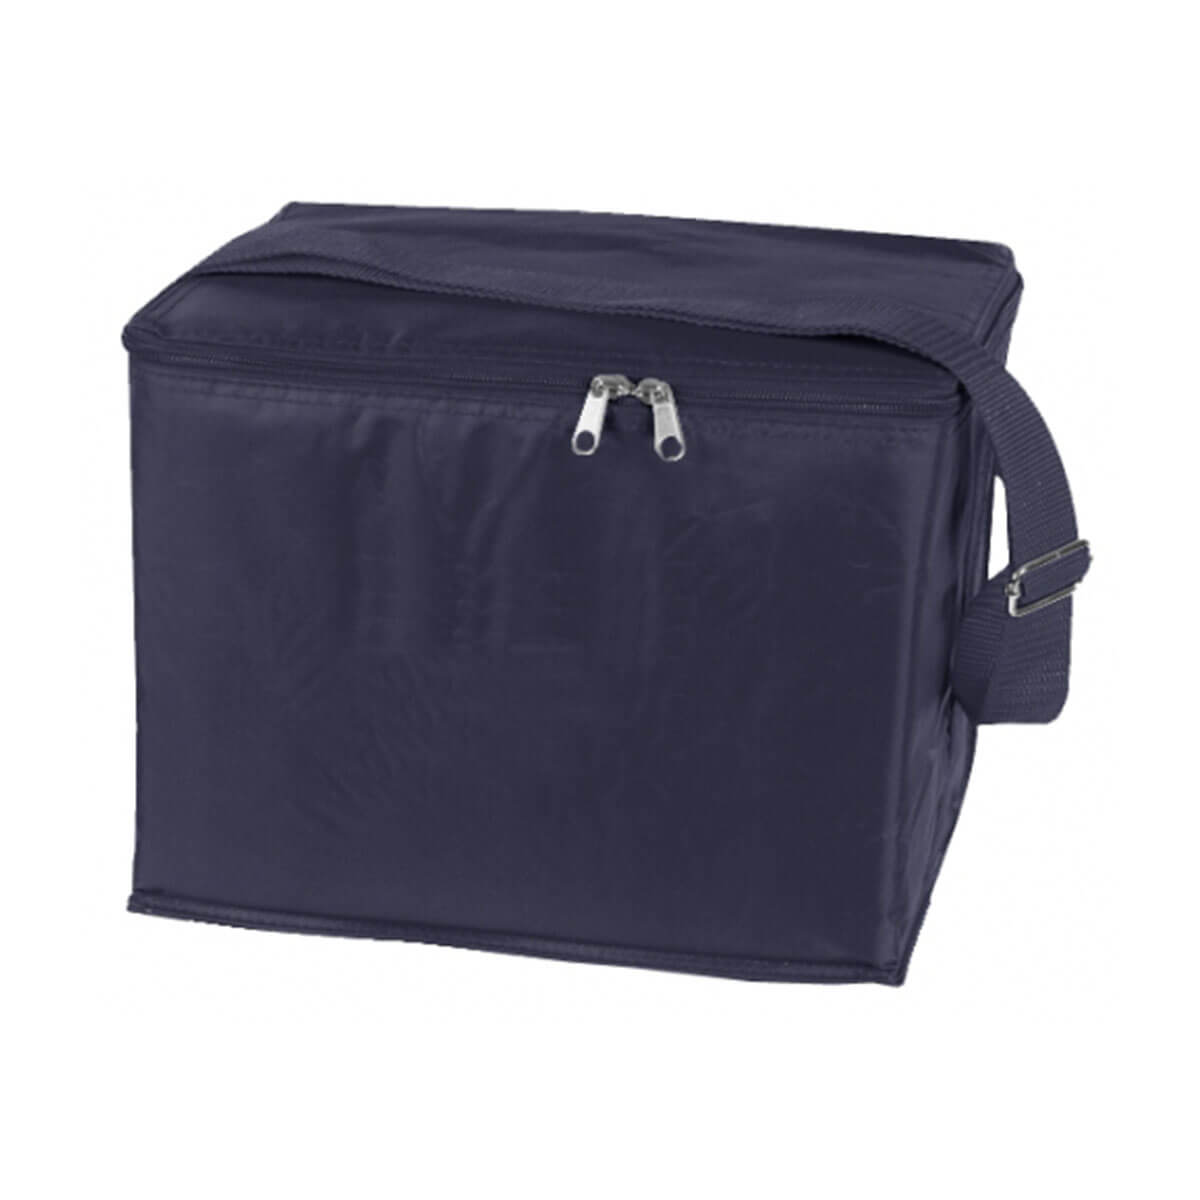 6 Can Cooler Bag-Navy